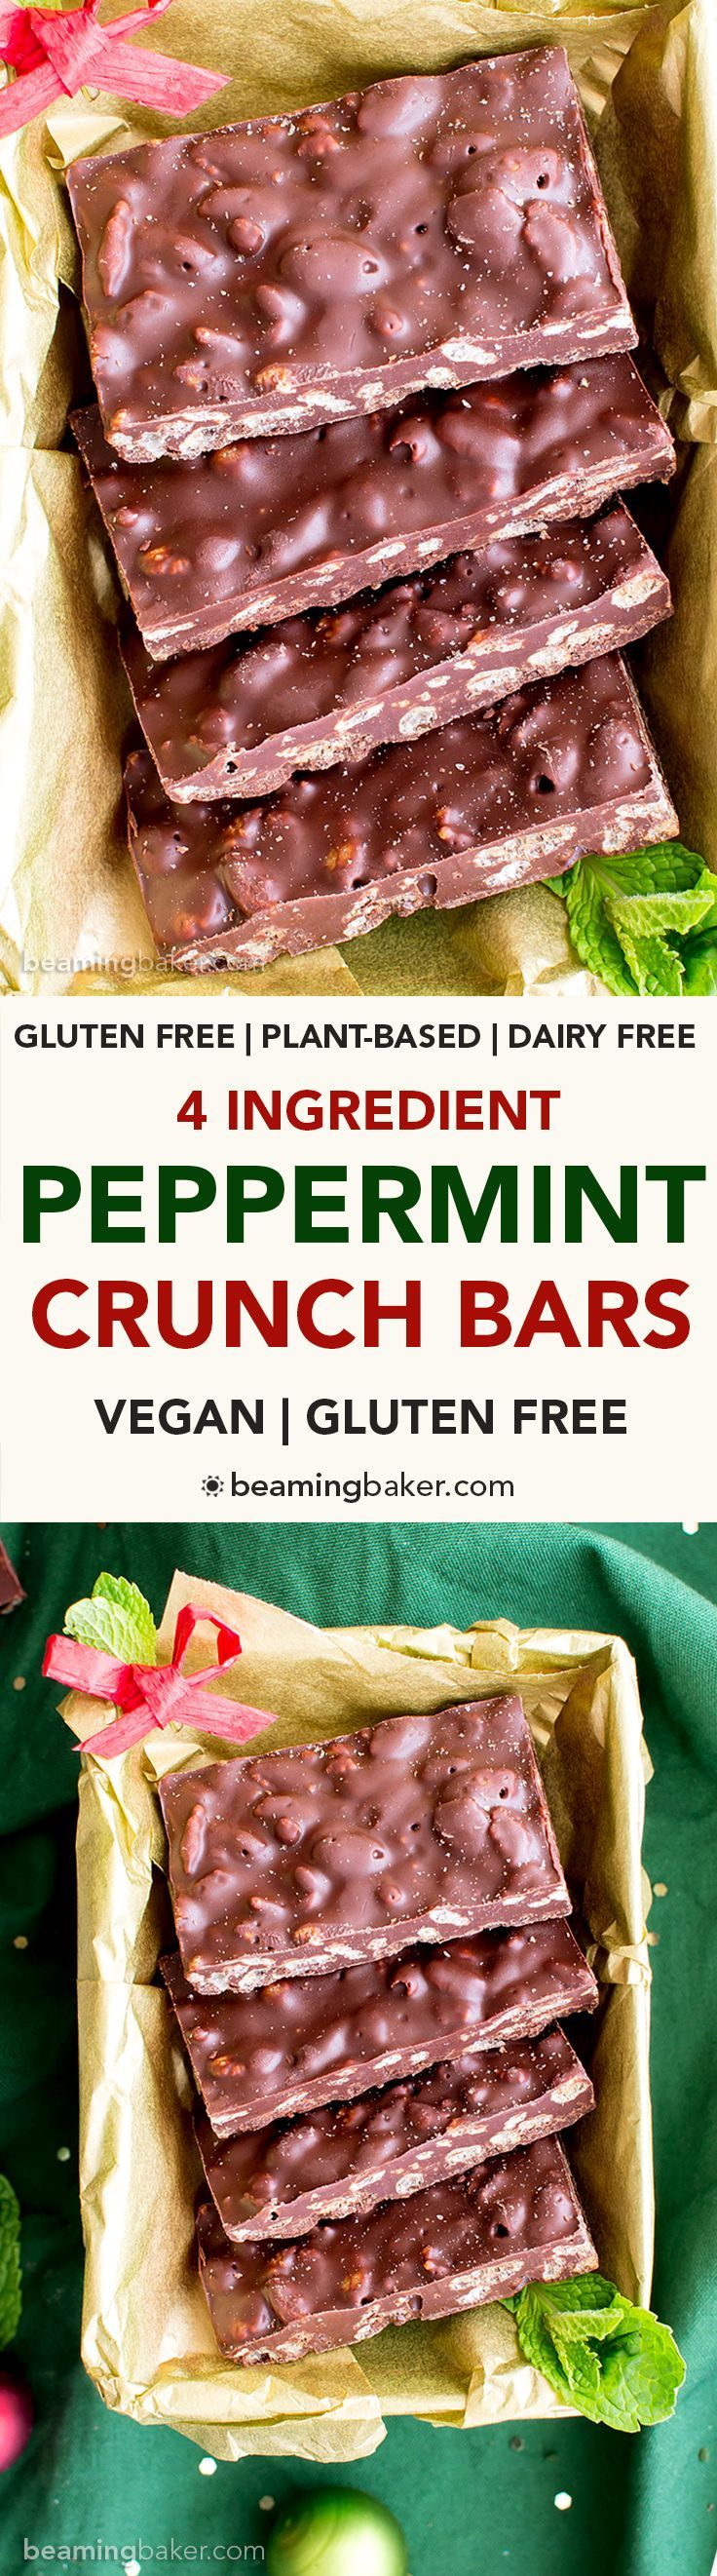 4 Ingredient Peppermint Chocolate Crunch Bars (Gluten Free, Vegan, Dairy-Free): a one bowl, 4-ingredient recipe for crispy, cool mint crunch bars perfect for the holidays! #Vegan #GlutenFree #DairyFree | BeamingBaker.com